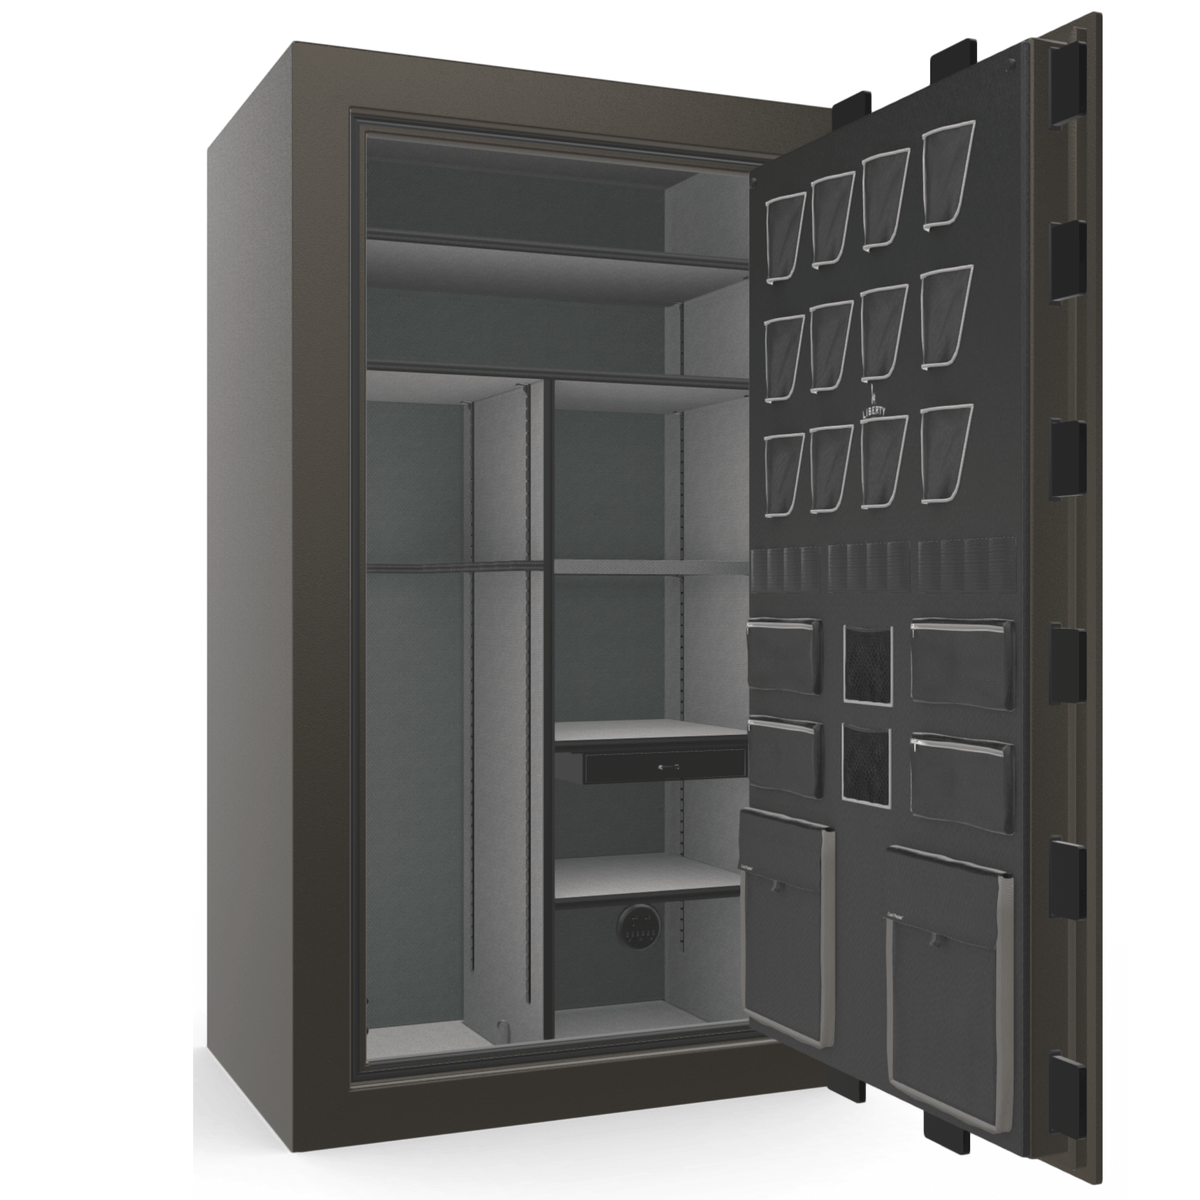 "Classic Plus | 50 | Level 7 Security | 110 Minute Fire Protection | Gray | Black Electronic Lock | 72.5""(H) x 42""(W) x 32""(D)"